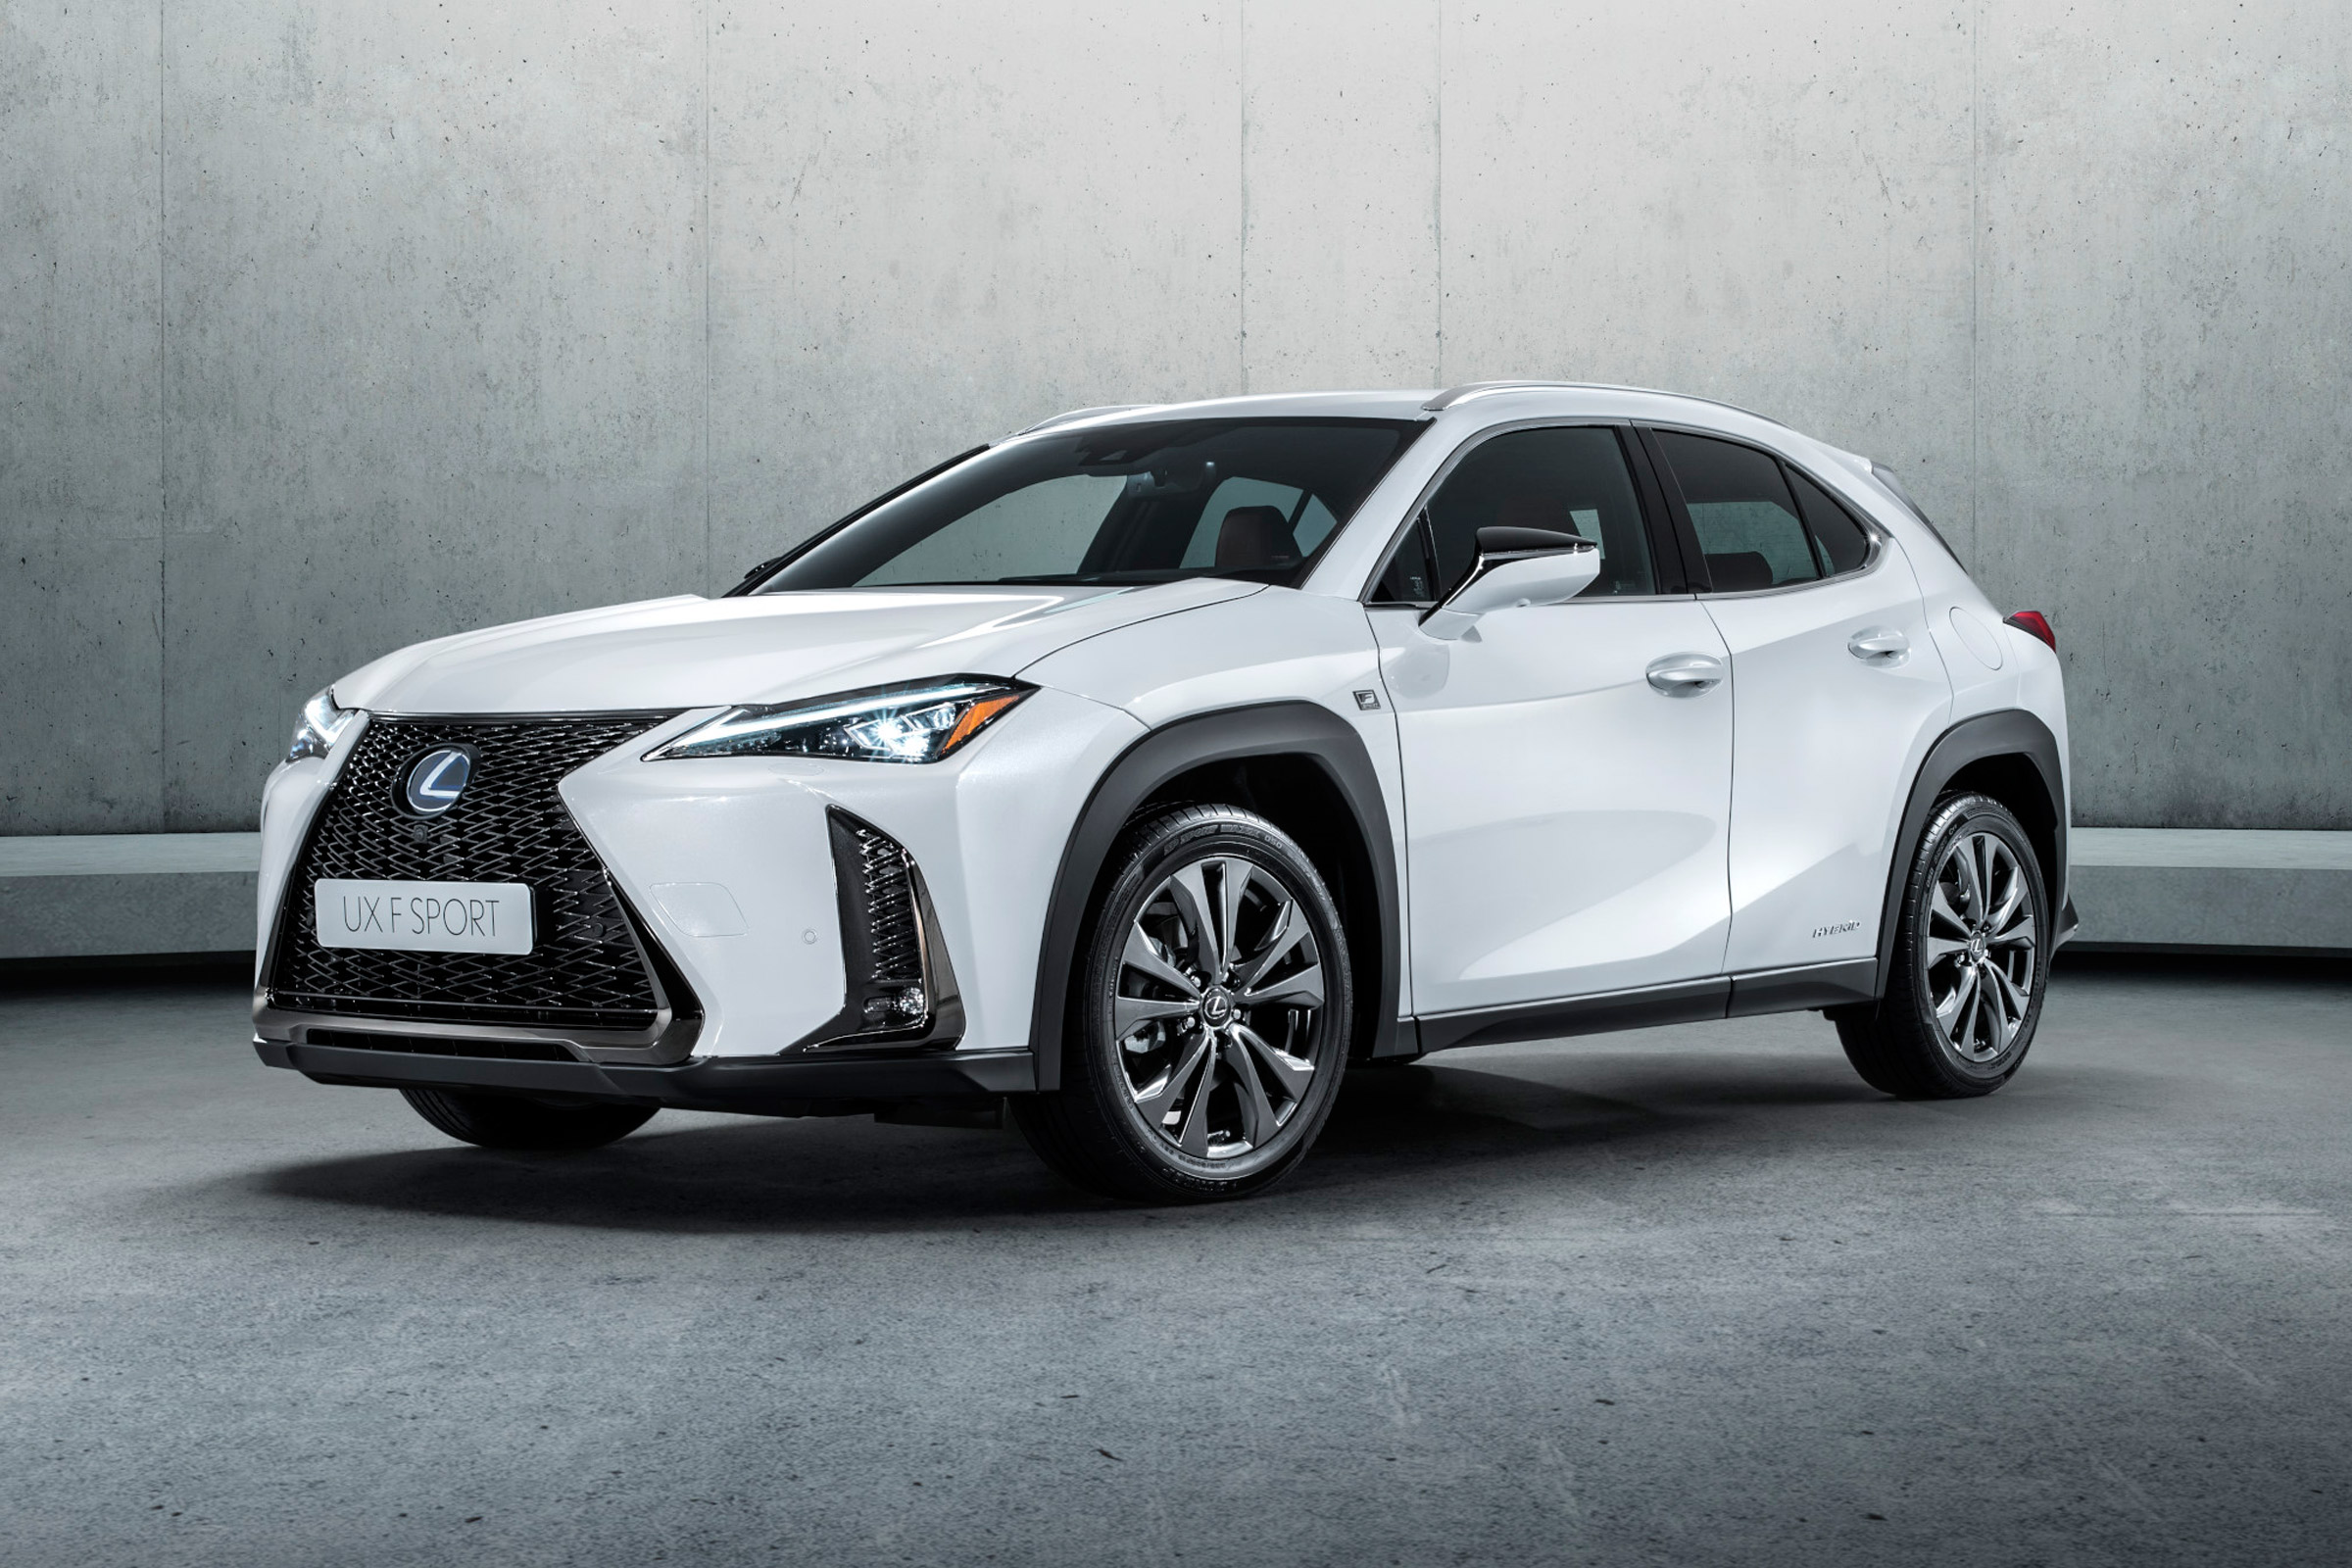 New Lexus Ux Suv 2019 Specs Prices And On Sale Date Carbuyer